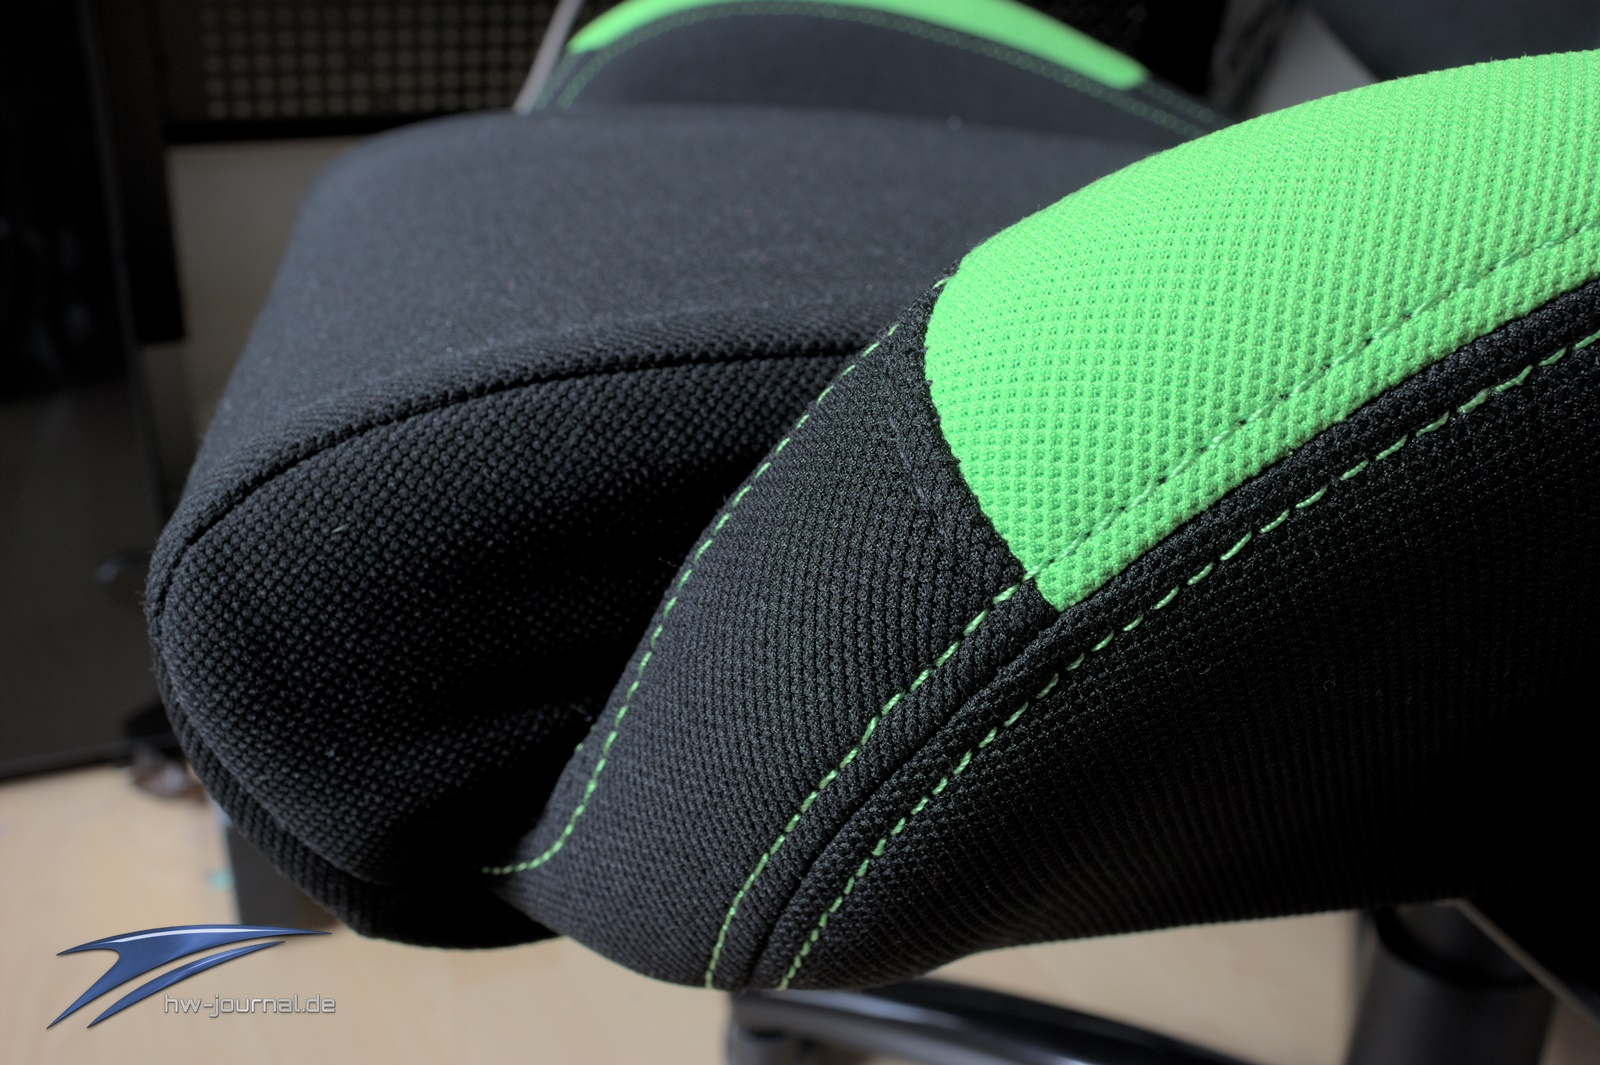 Gaming Sessel Test Test: Akracing Gaming Chair Schwarz/grün - Hardware-journal